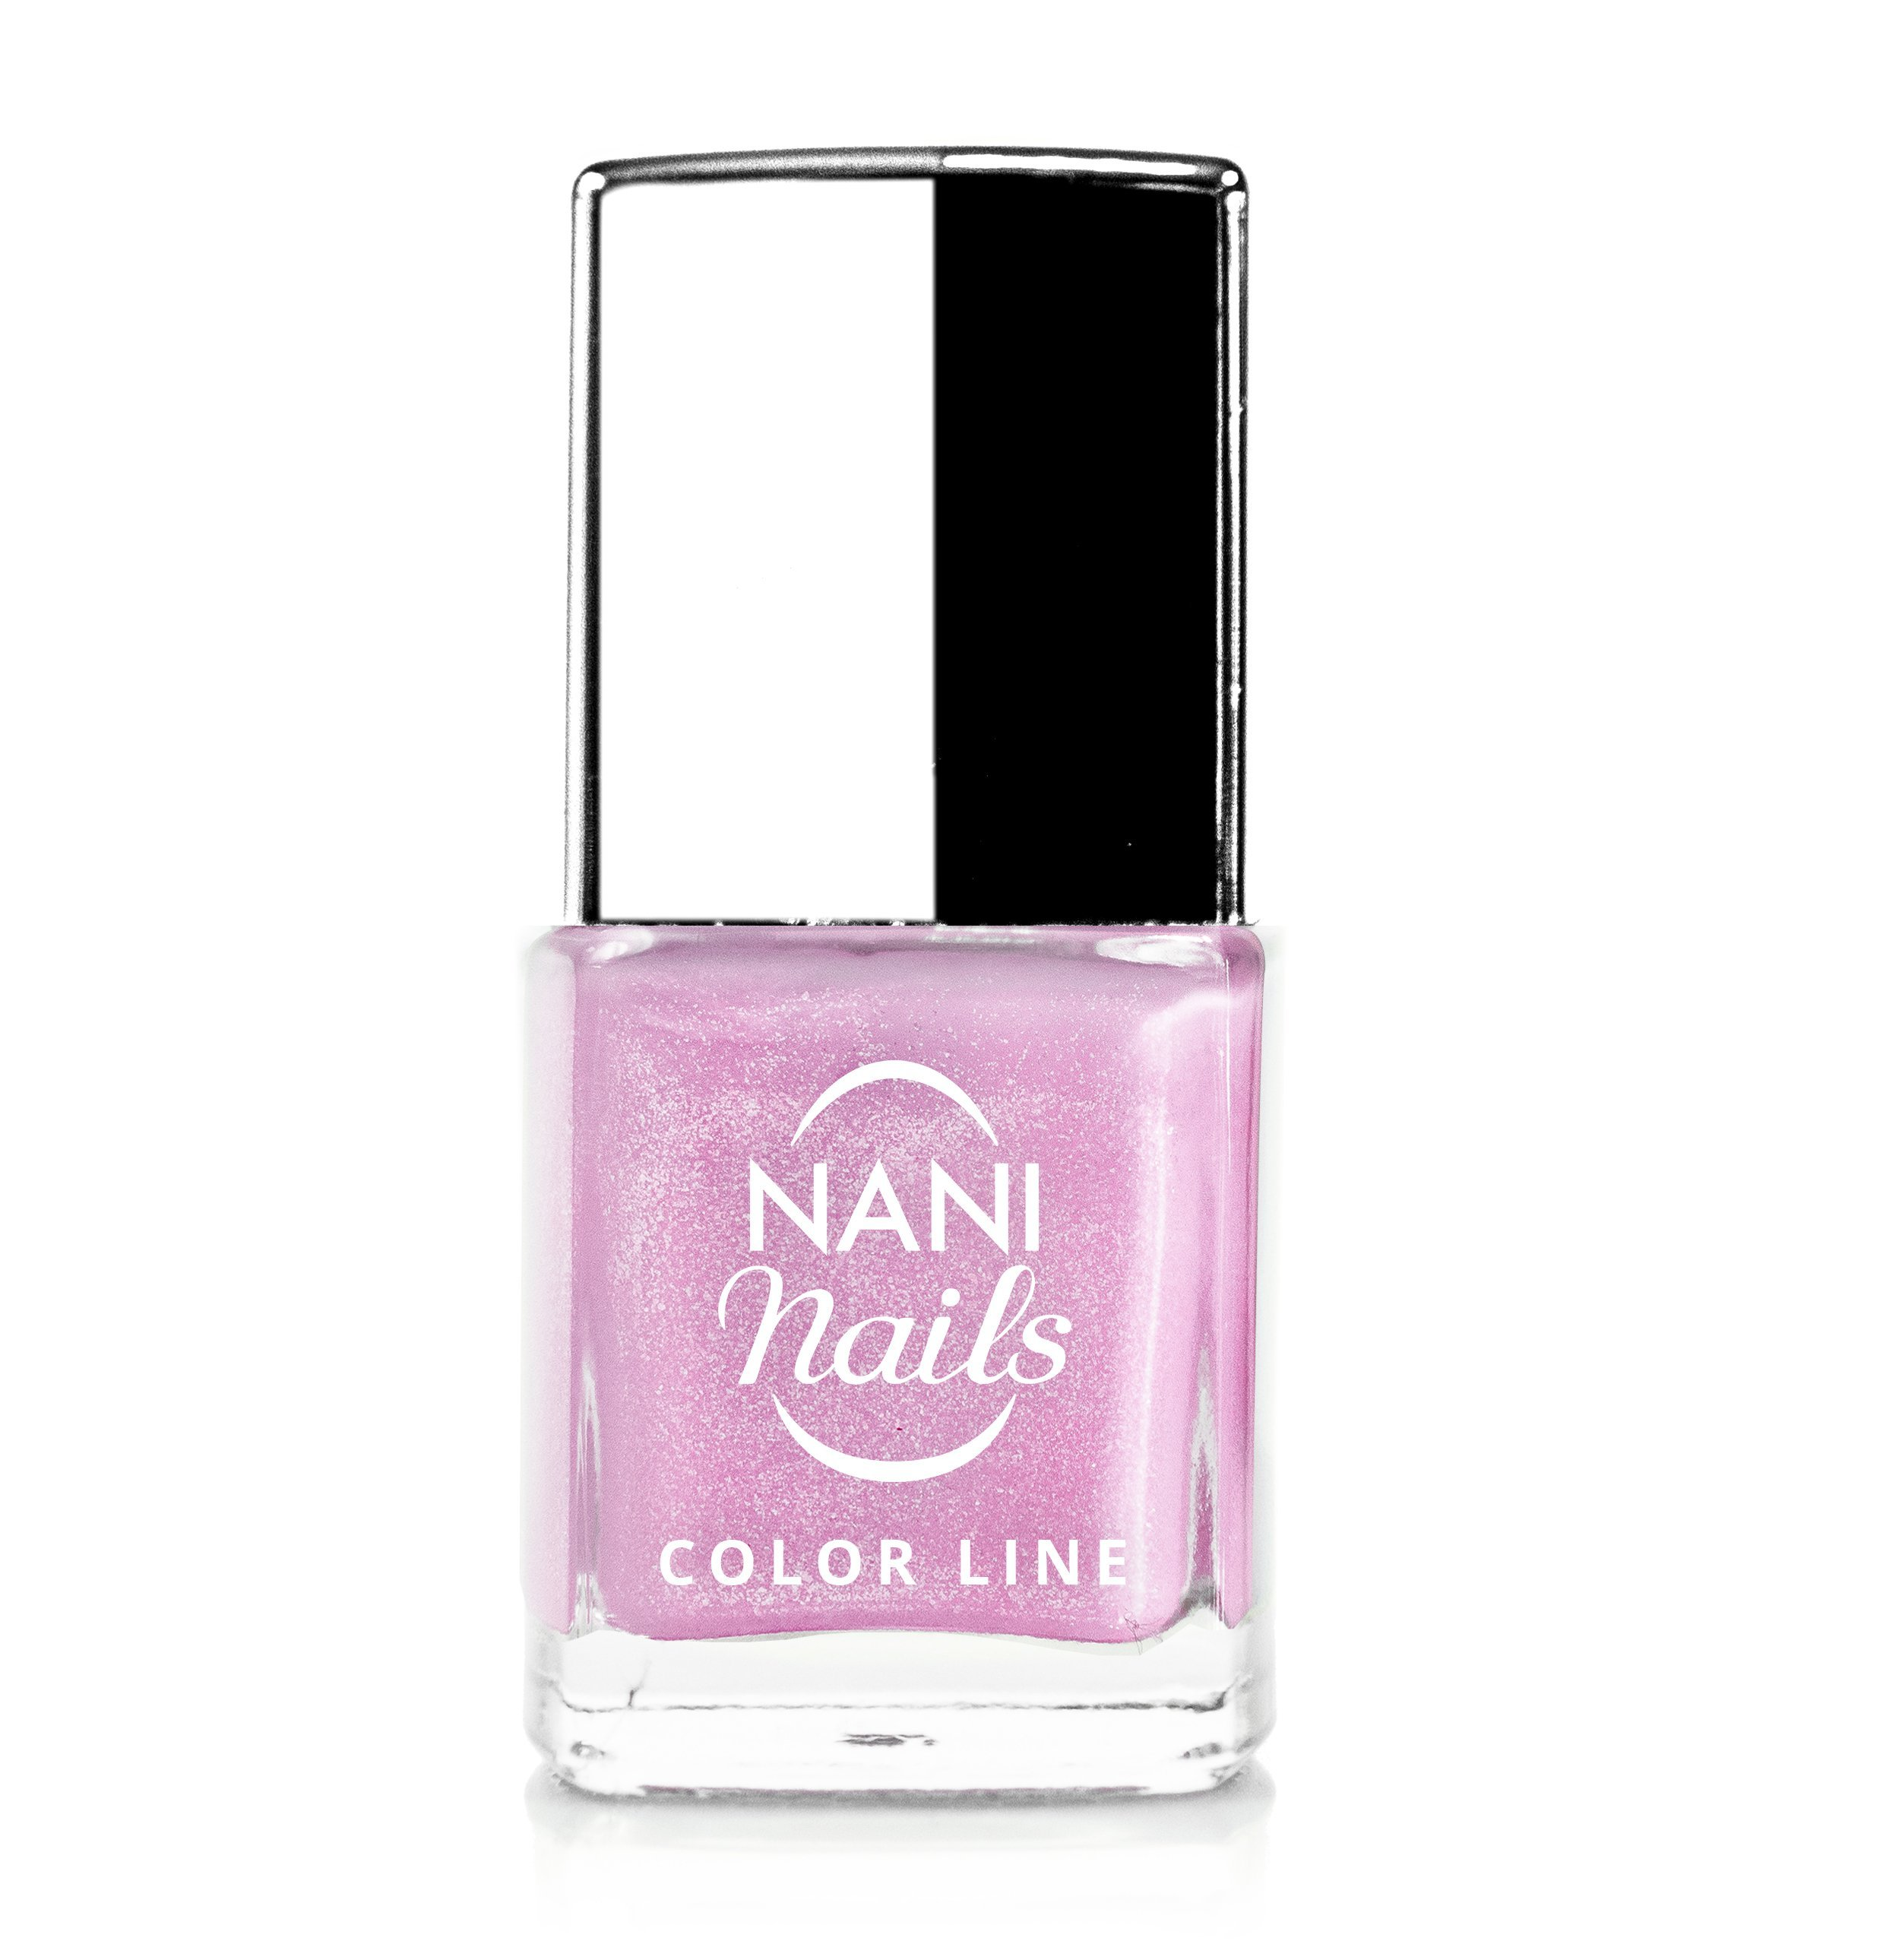 NANI lak Color Line 9 ml - 57